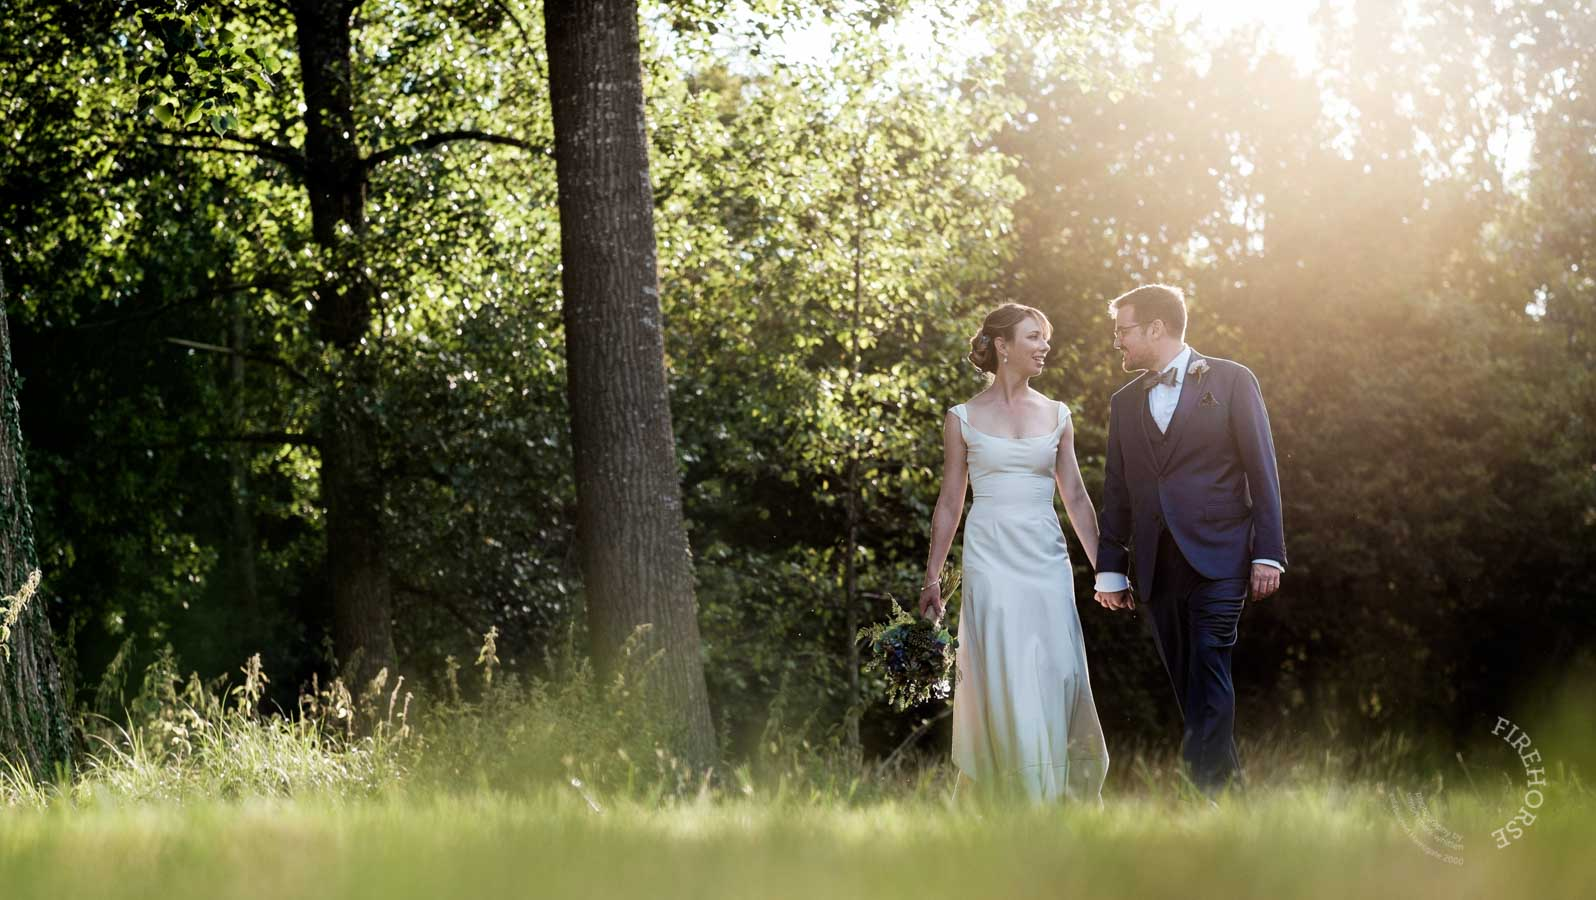 Lot-et-Garonne-Wedding-Photography-300